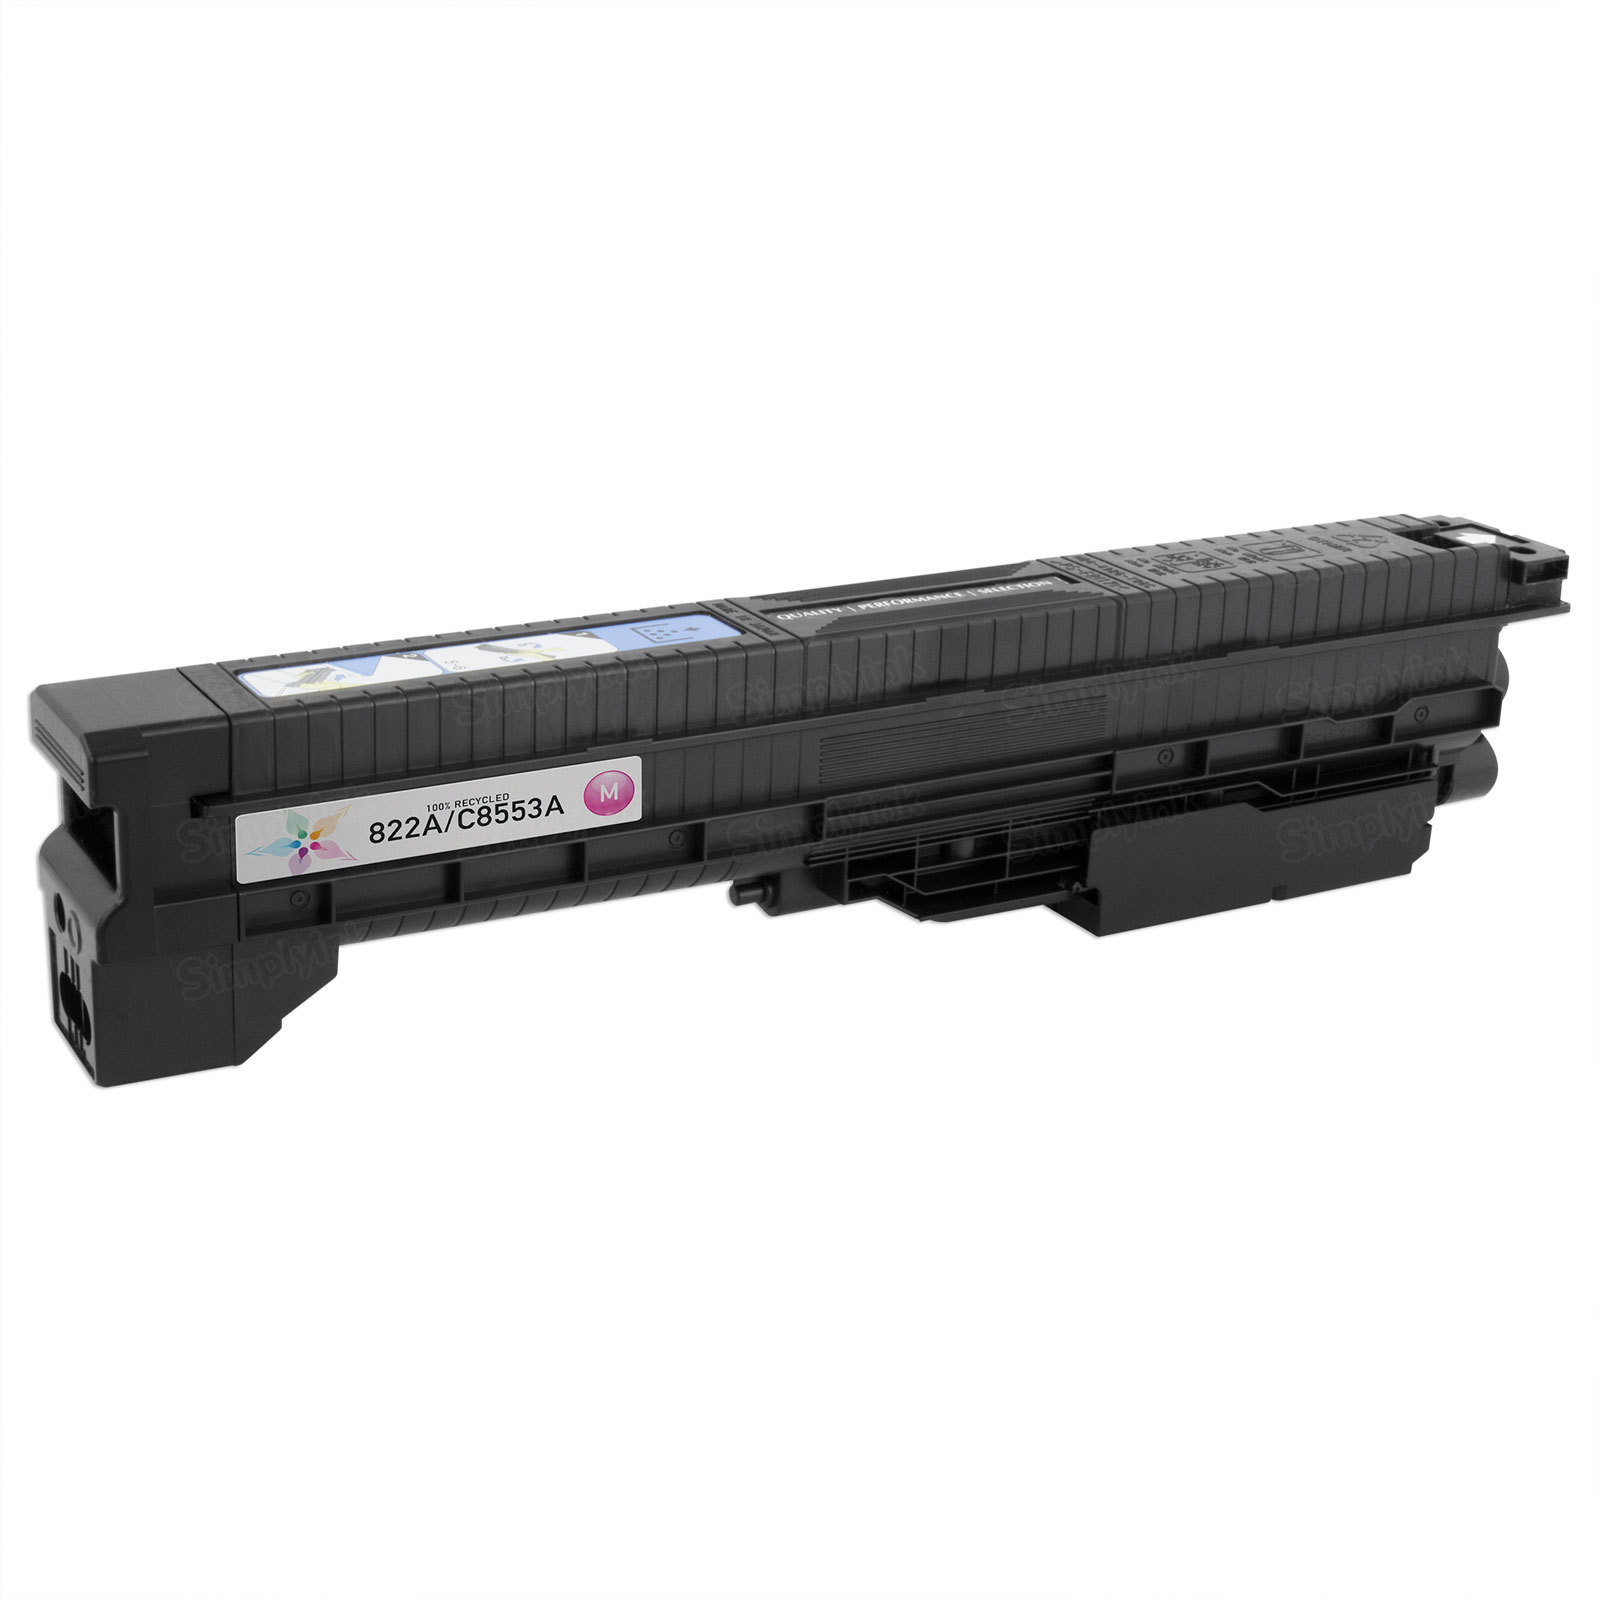 Remanufactured Replacement Magenta Laser Toner for HP 822A